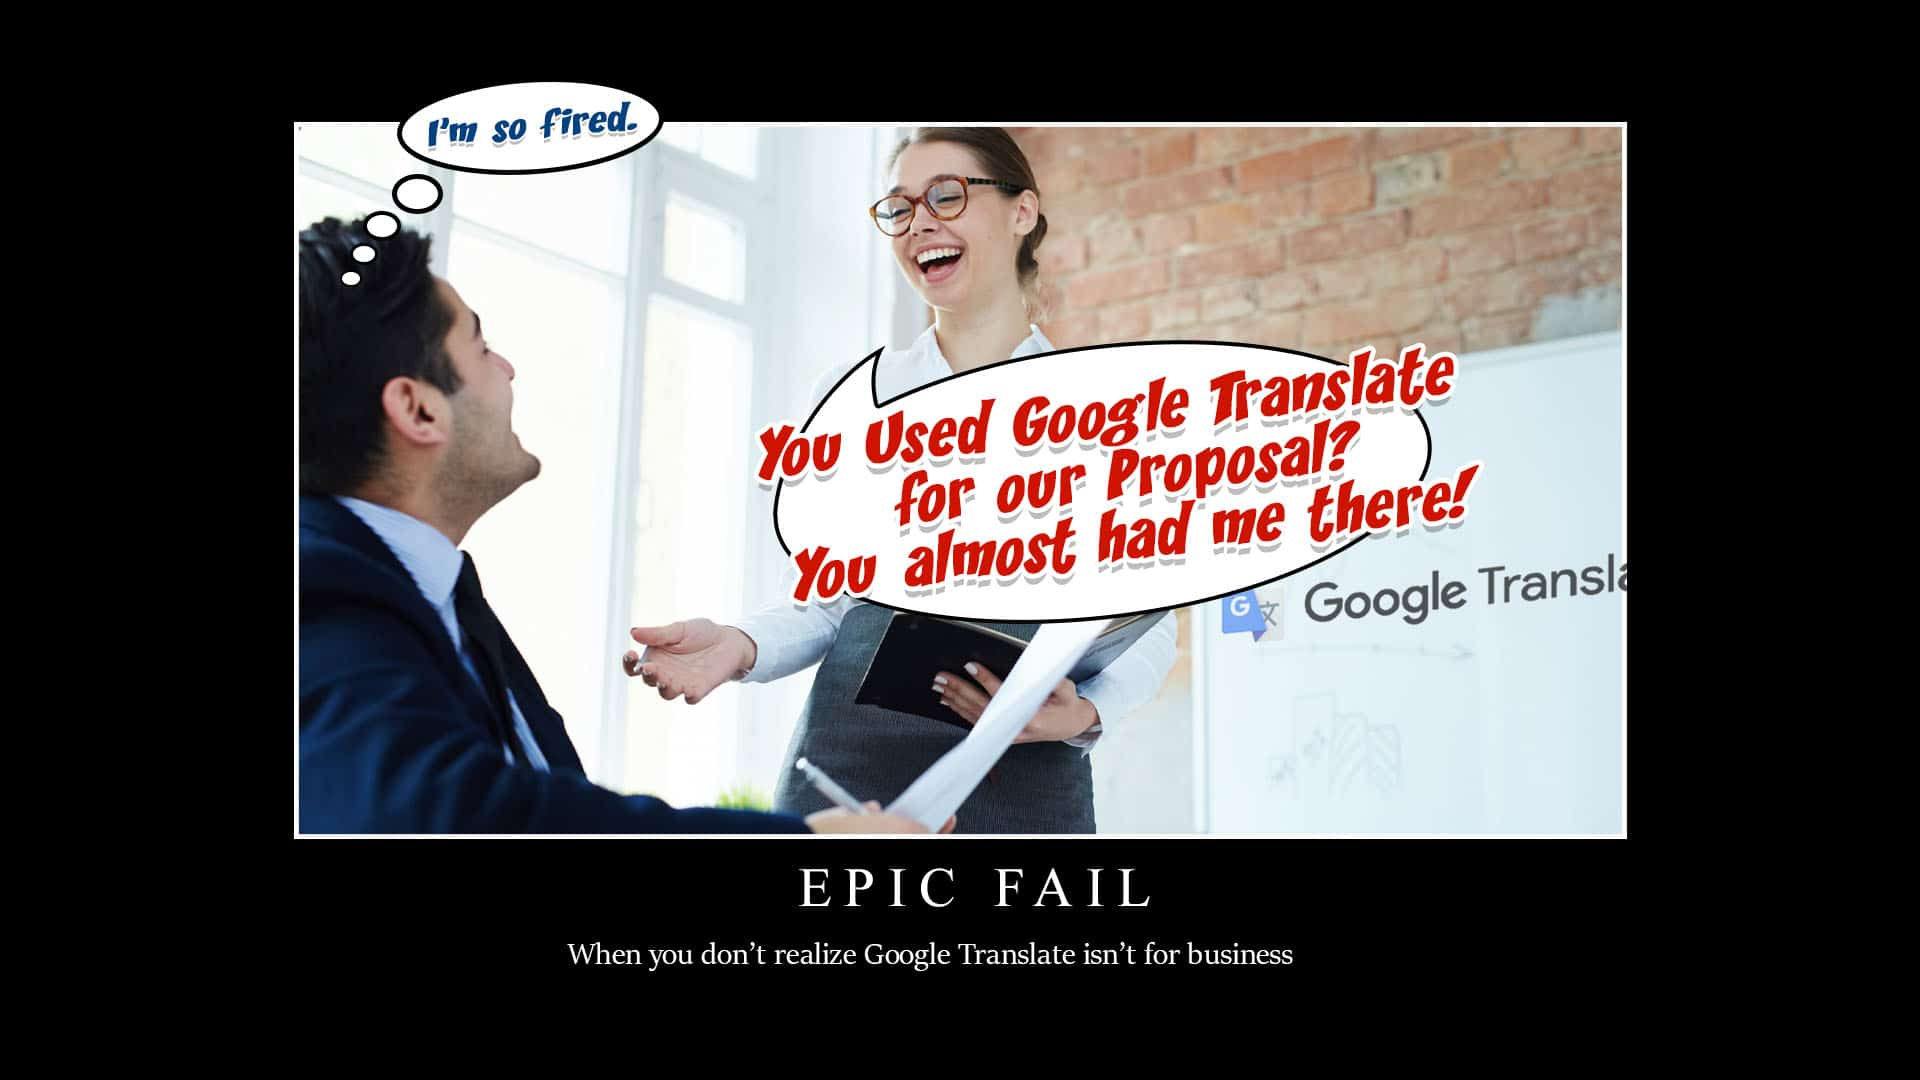 Google Translate Epic Fail For business: Use CIT instead